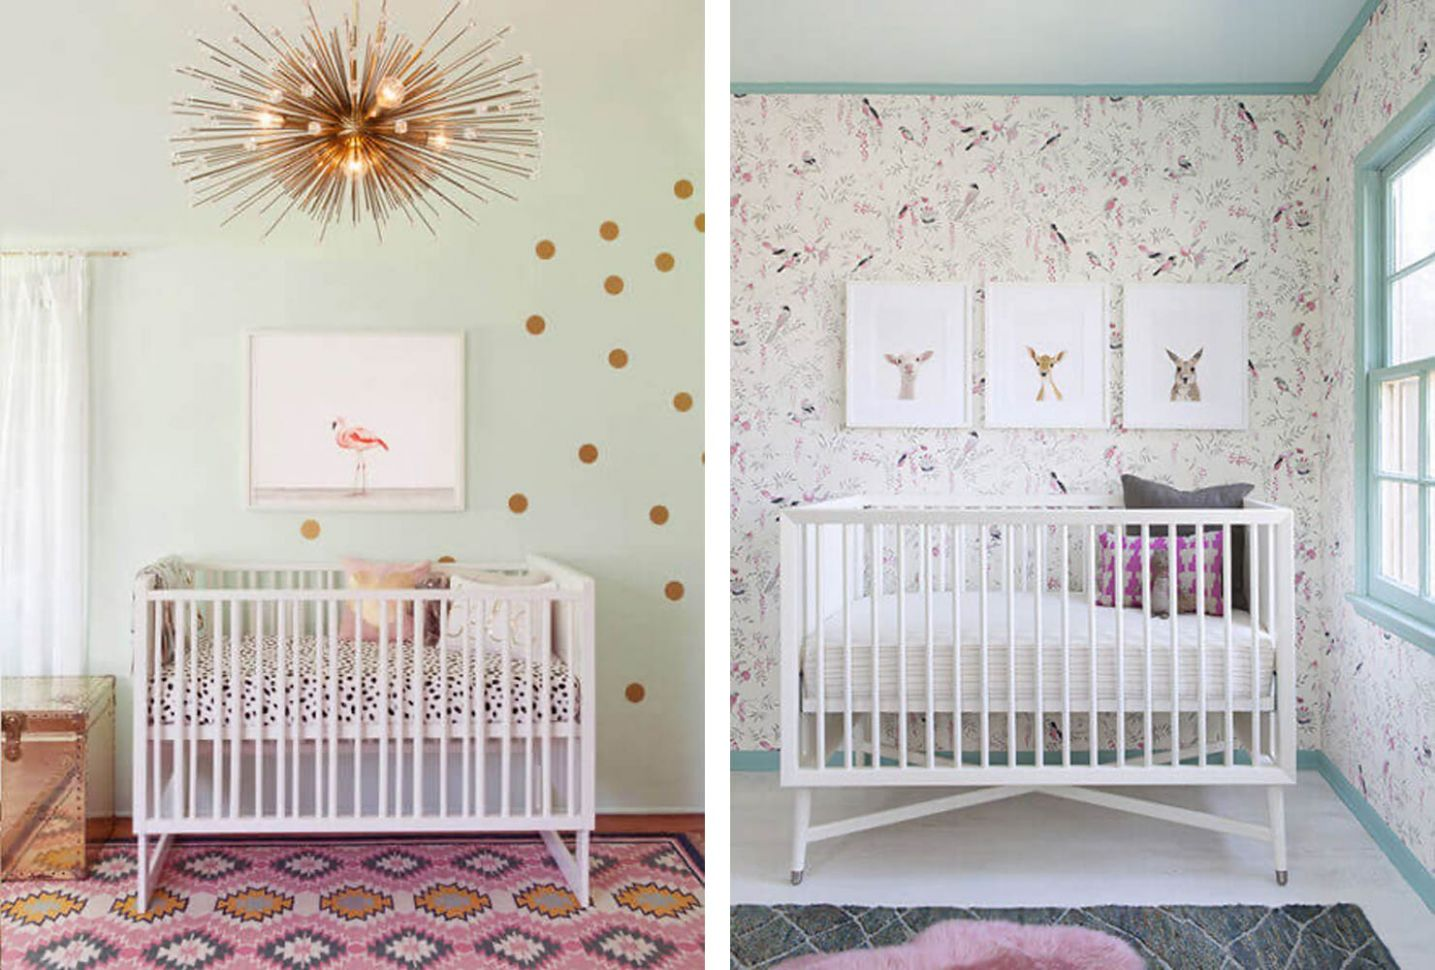 9+ Adorable Baby Girl Room Ideas | Shutterfly - baby room decor ideas